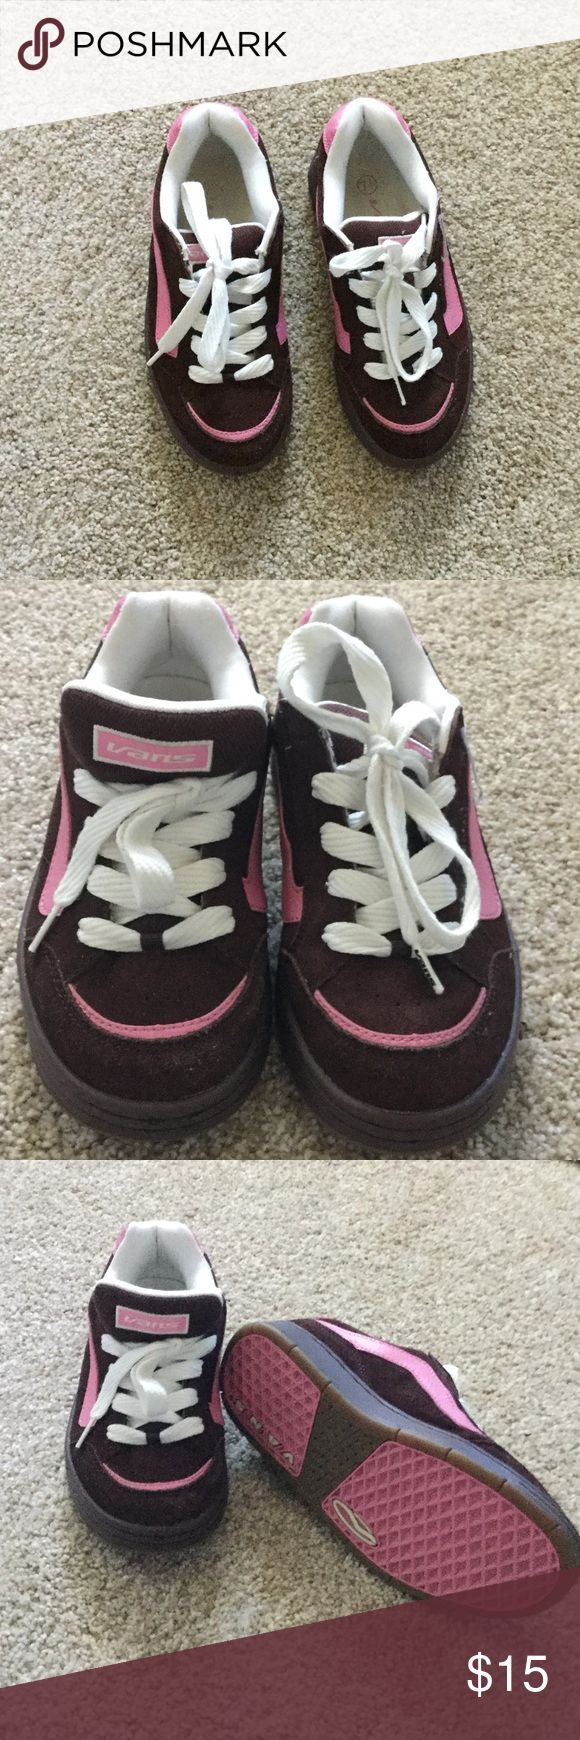 🎀 women's Vans shoes Super cute pink and brown Vans, they are a 7 1/2 but fit more like a7. In perfect condition Vans Shoes Sneakers